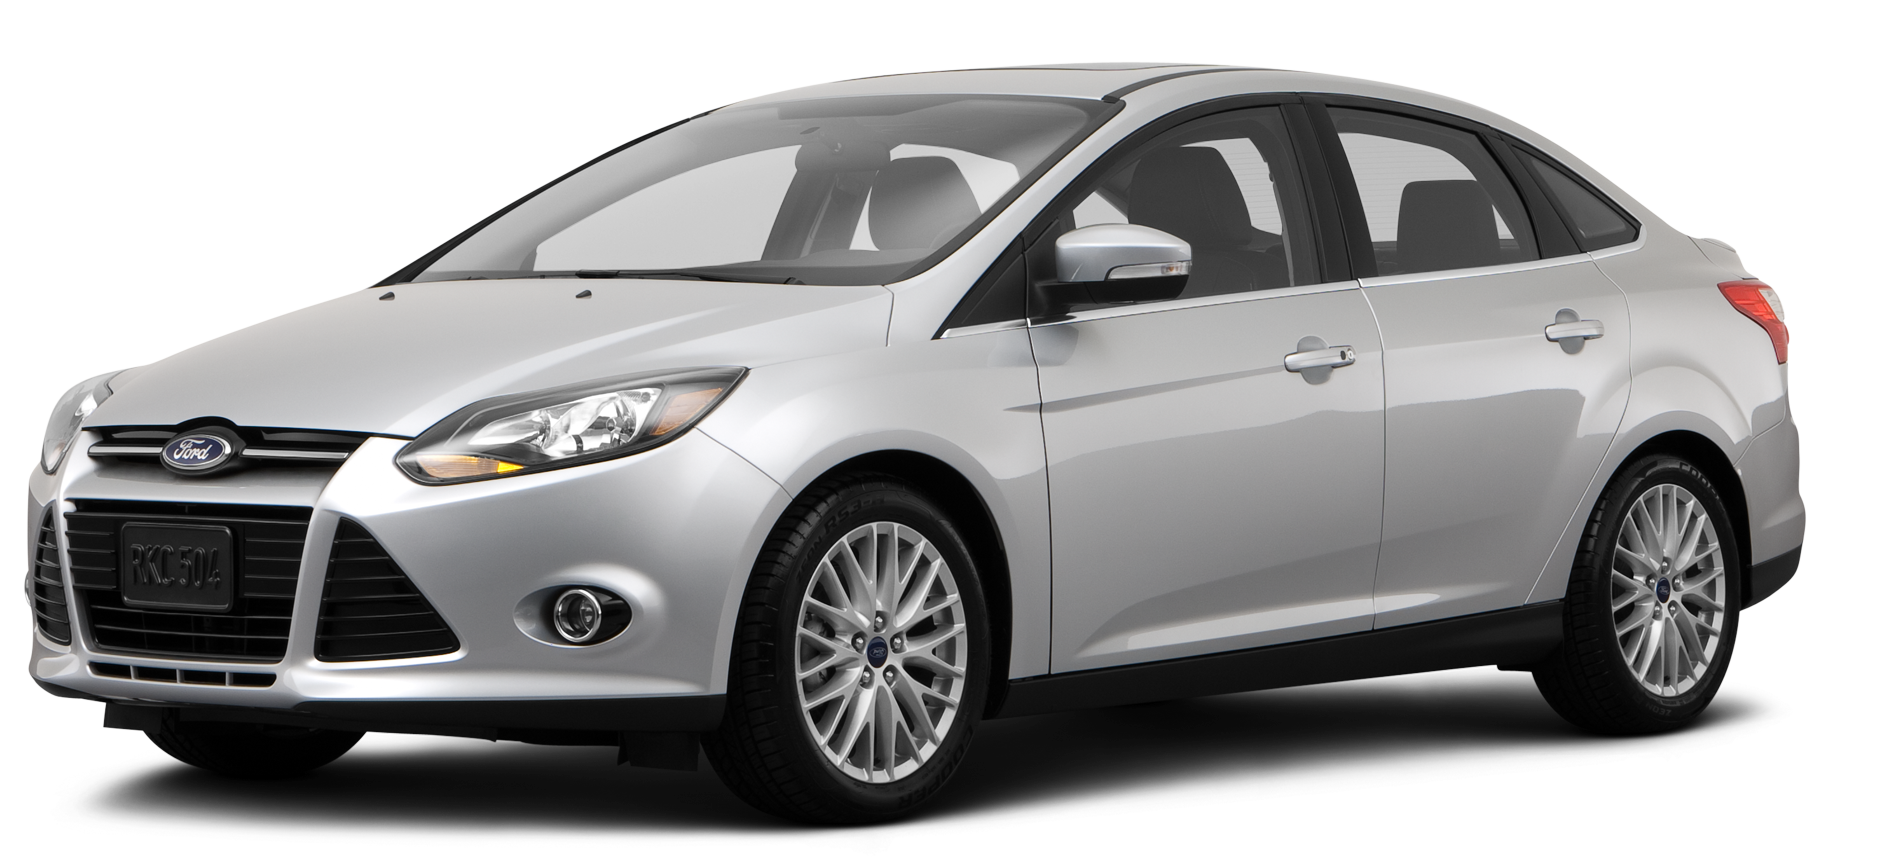 uploads ford ford PNG12236 5